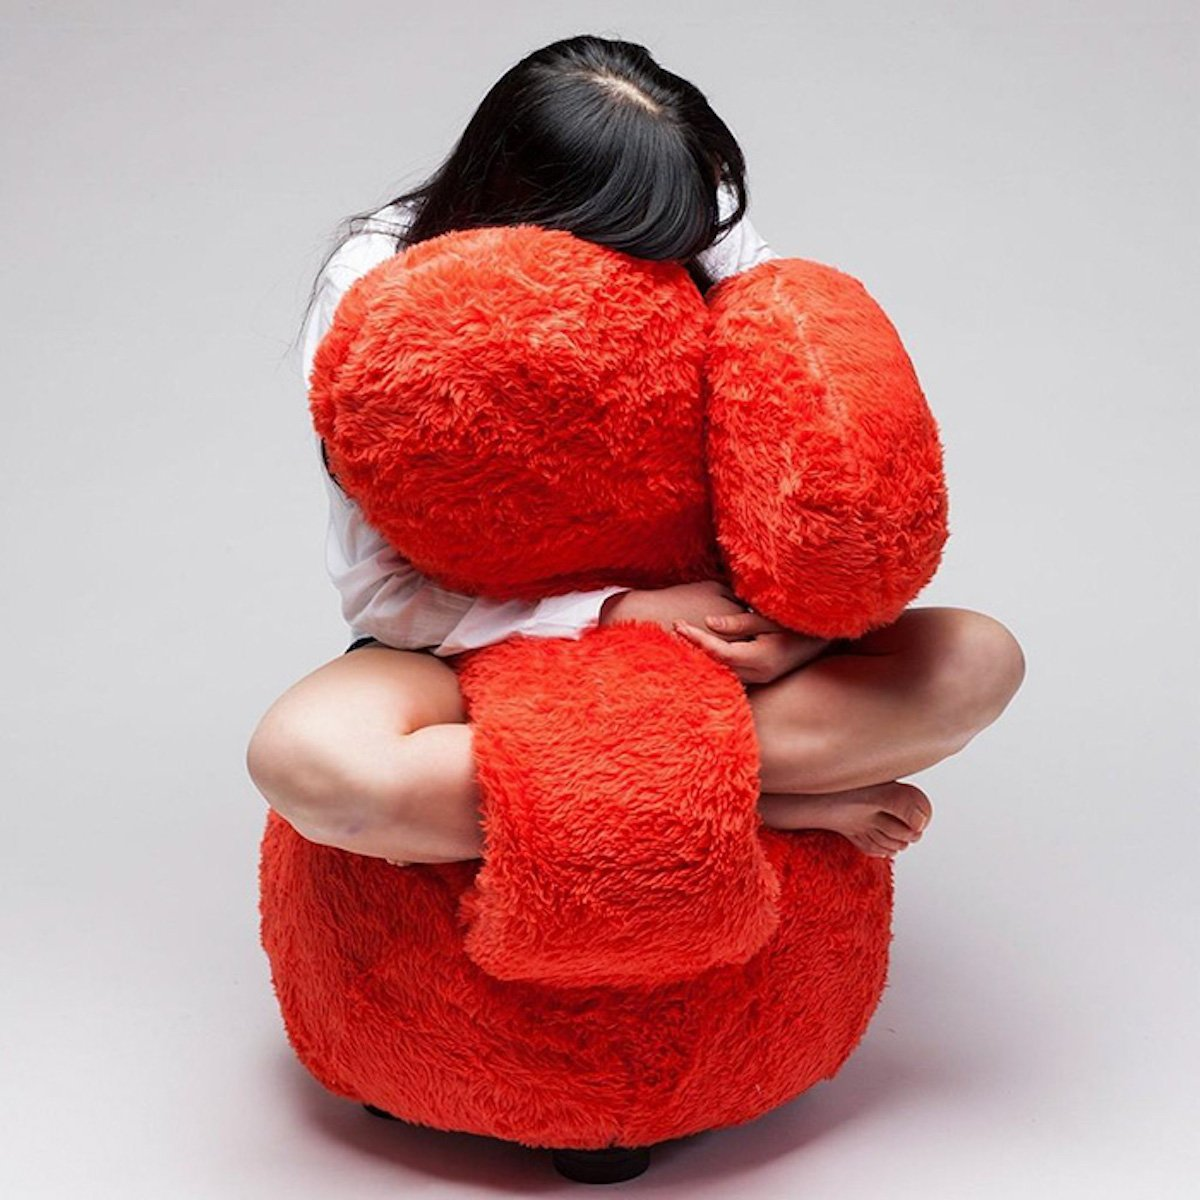 free-hug-sofa-eun-kyoung-lee-cozy